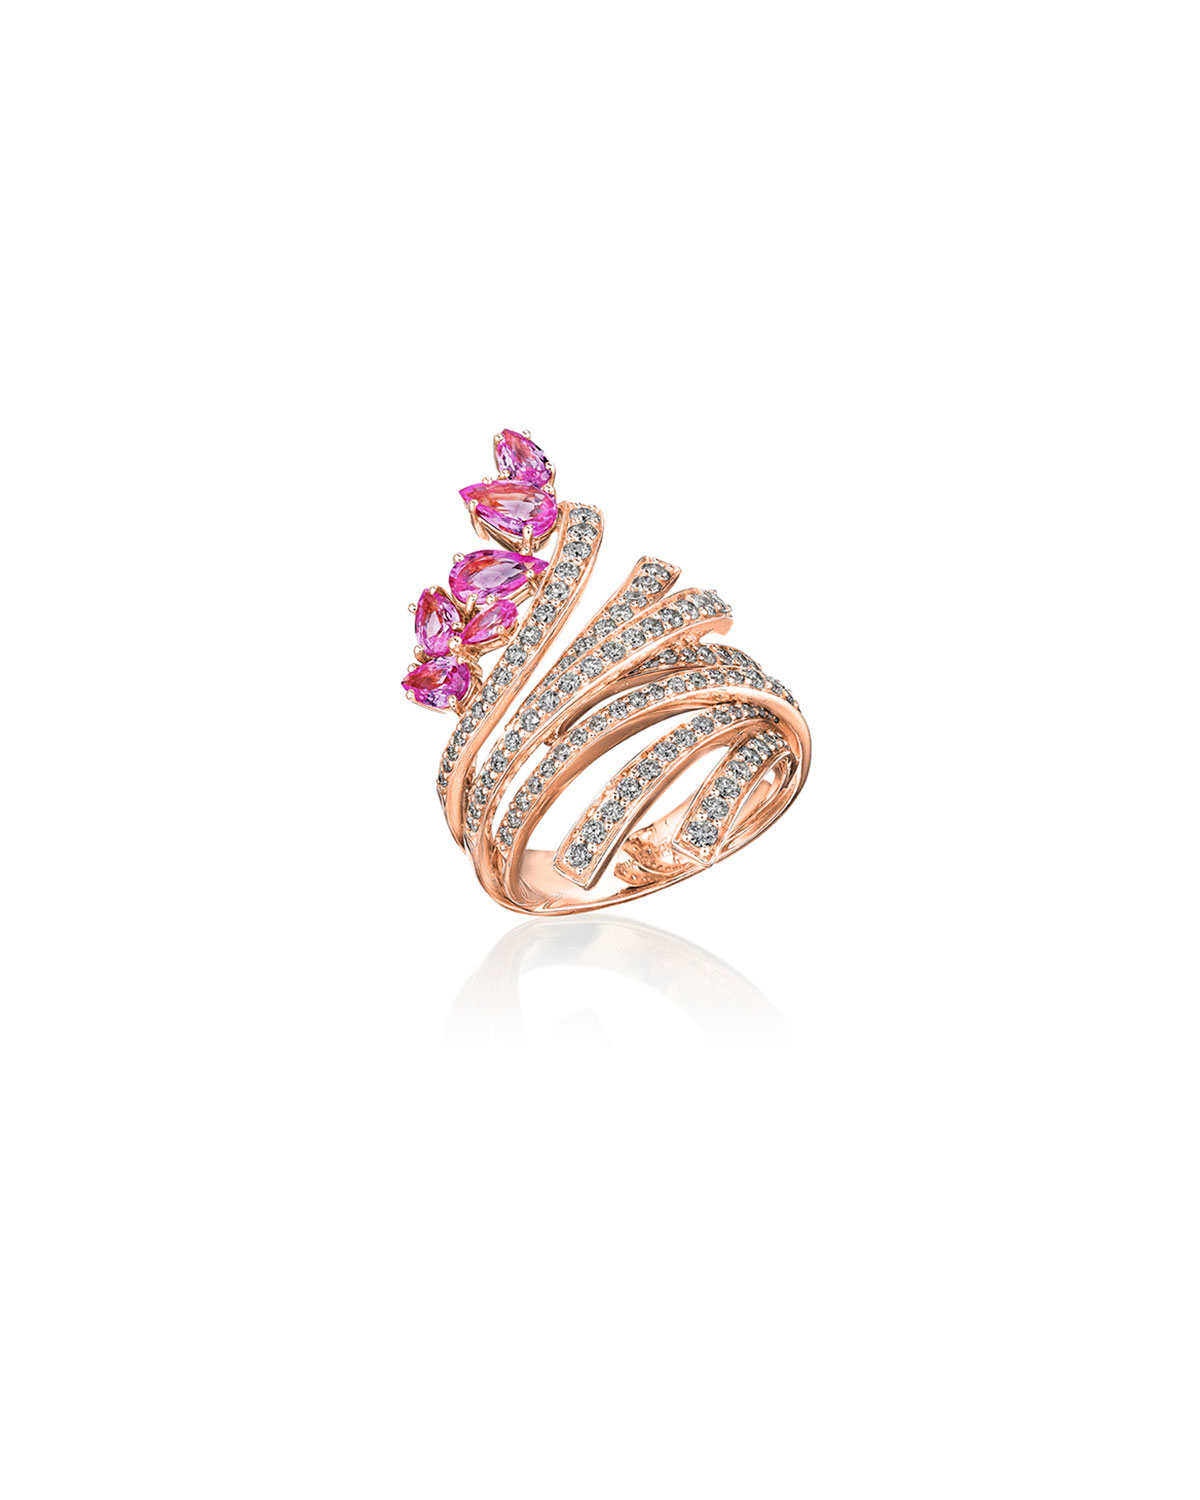 Mirage 18k Pink Gold Pink Sapphire and Diamond Ring